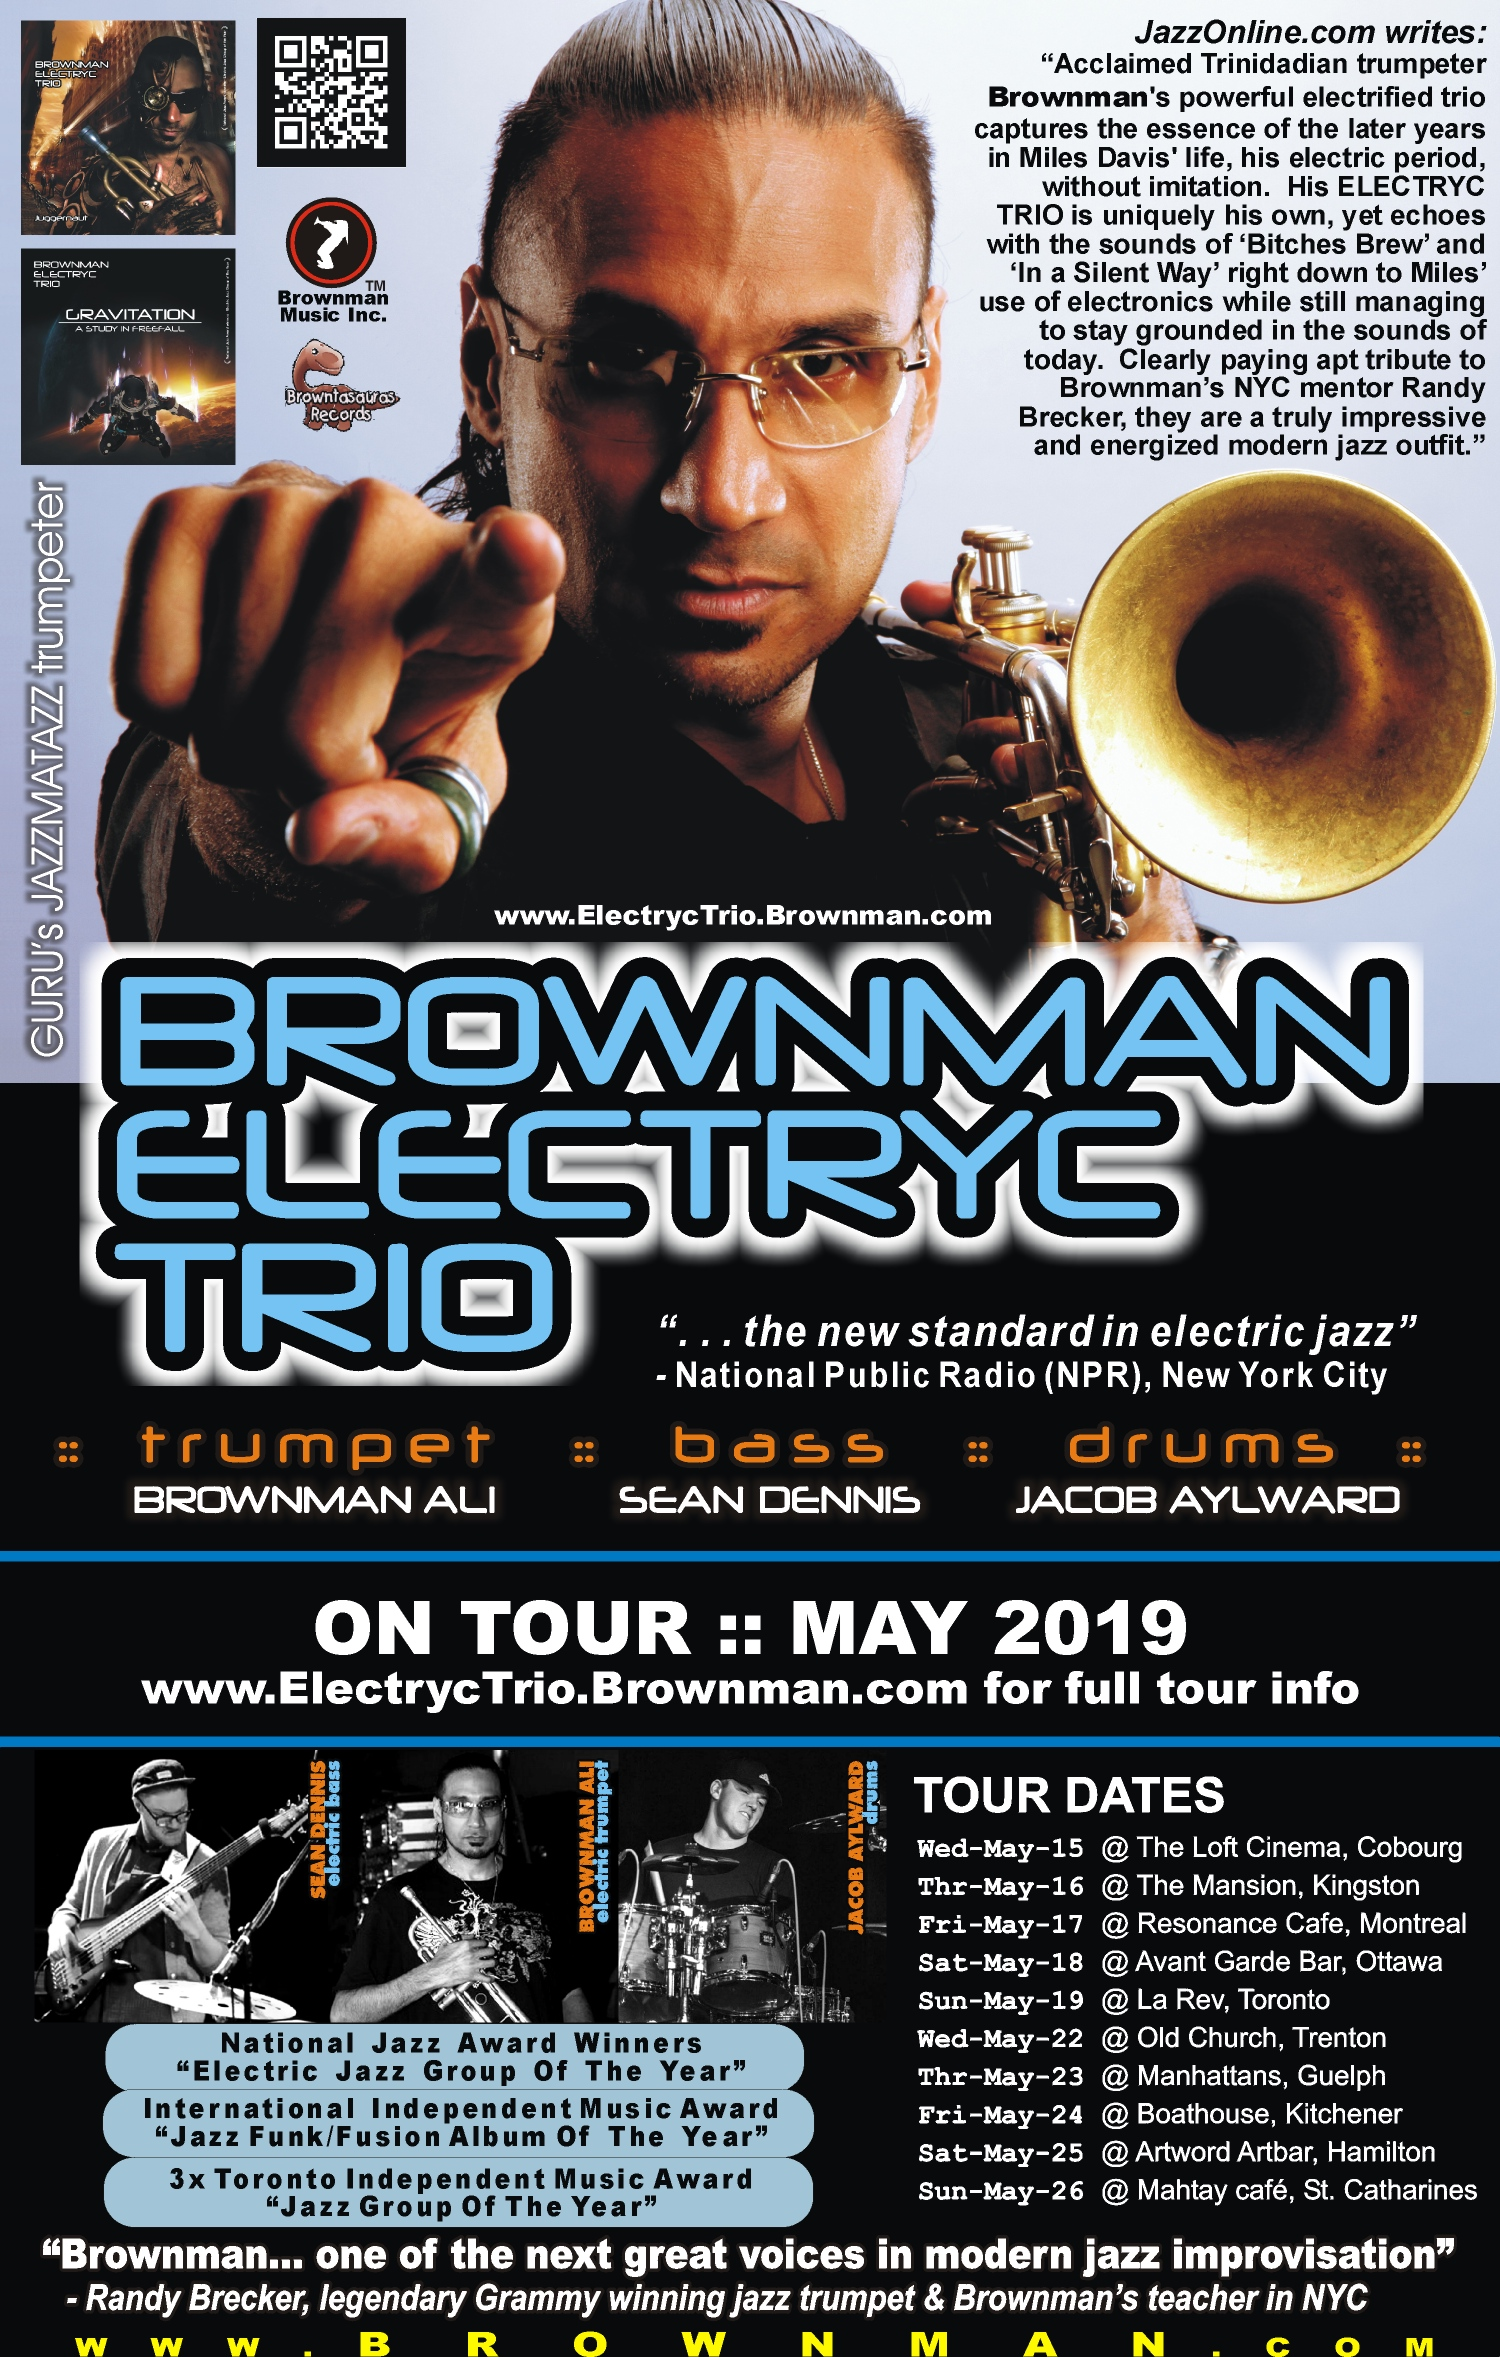 BROWNMAN ELECTRYC TRIO - Spring Tour Date